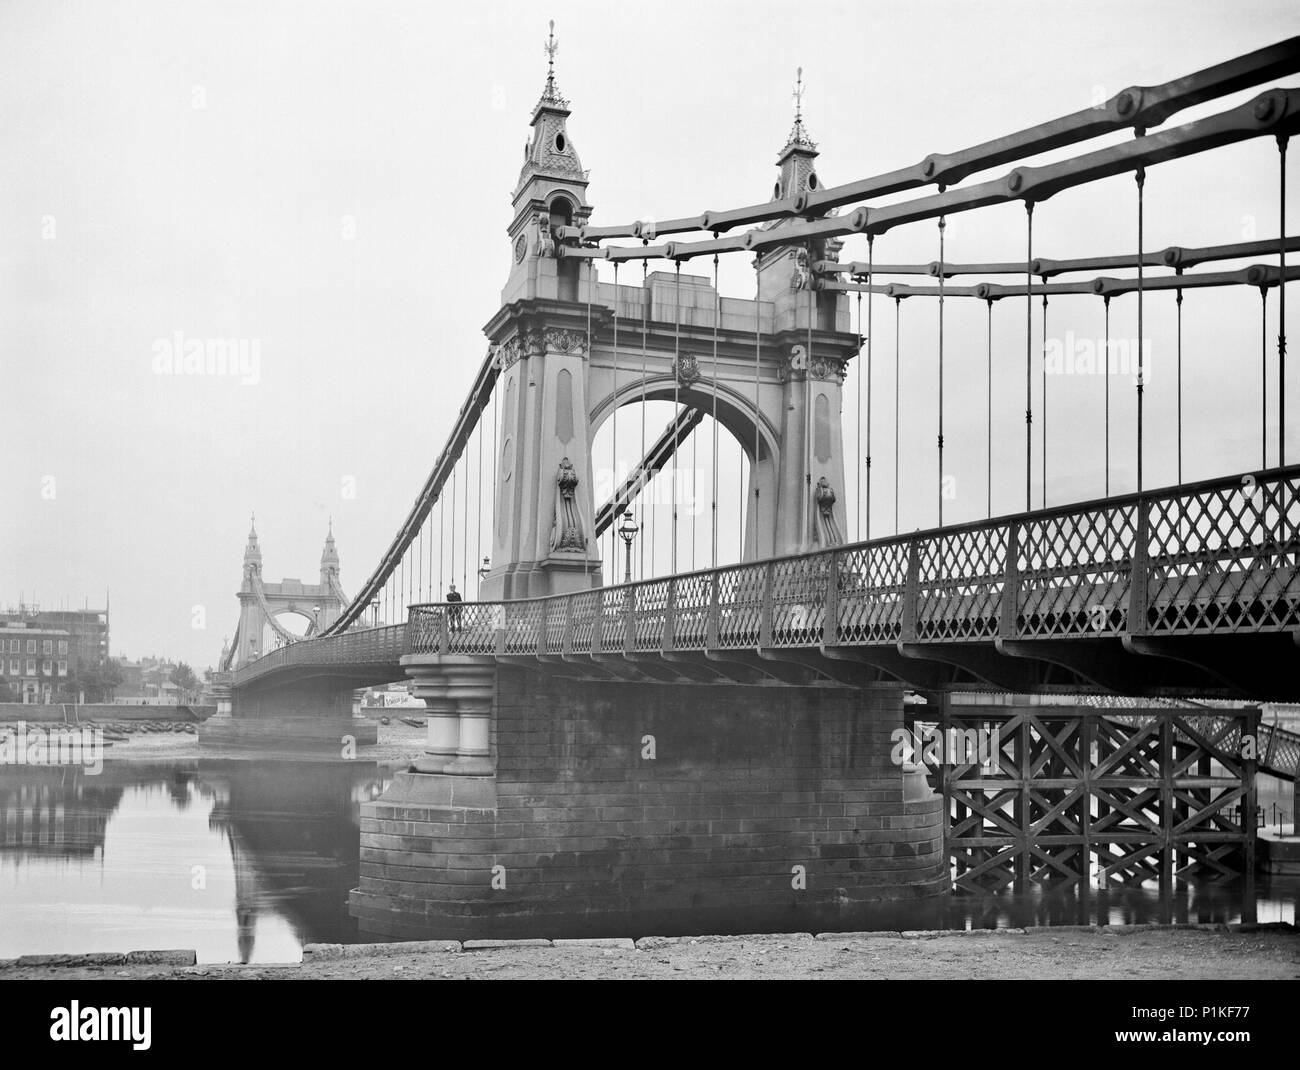 Hammersmith Bridge, Barnes, London, 1895. This decorative suspension bridge is seen here from the riverbank. It was built in 1887, designed by Sir Jos - Stock Image